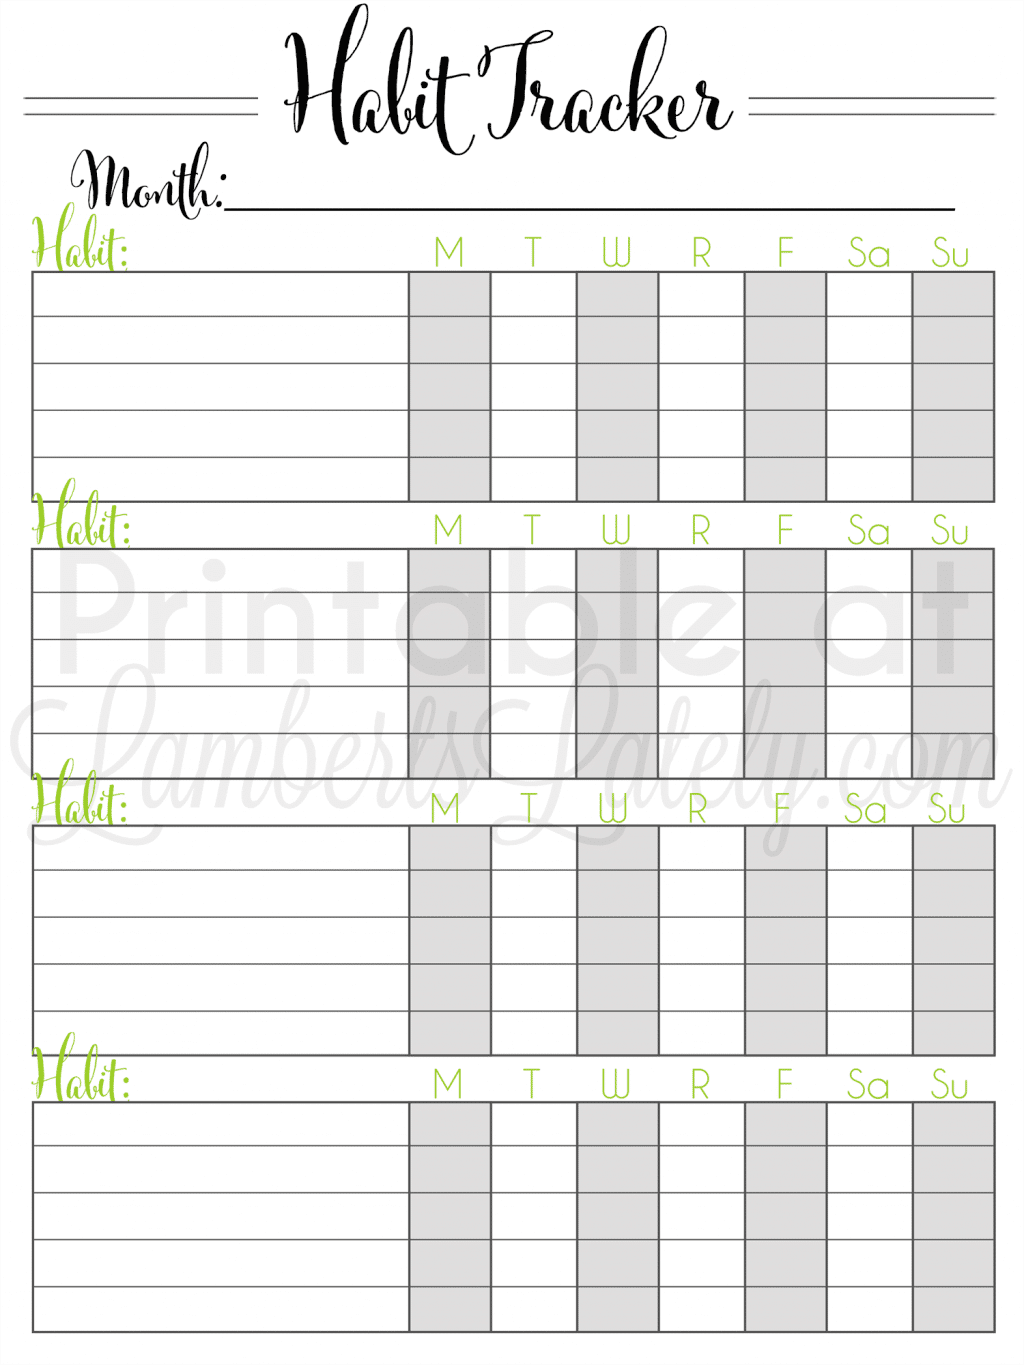 It is a graphic of Monthly Habit Tracker Printable intended for pdf